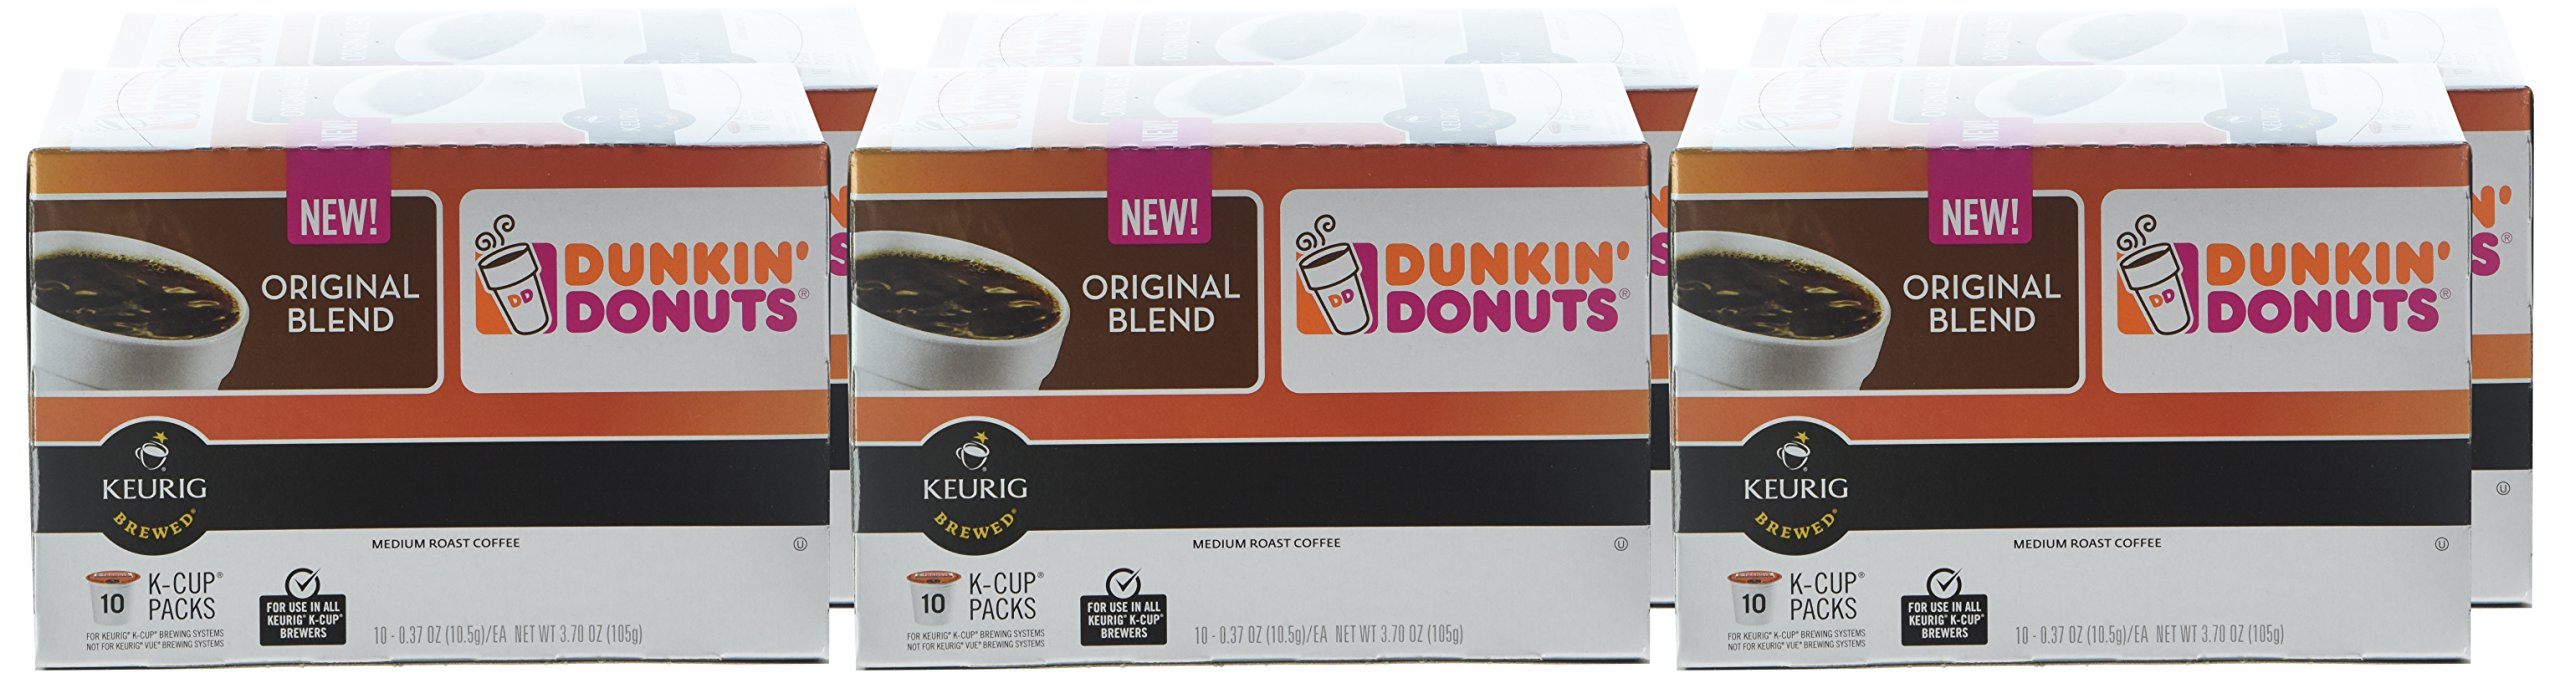 Dunkin' Donuts Original Blend Coffee for K Cup Pods, Medium Roast, For Keurig Brewers, 60Count by Dunkin' Donuts (Image #2)